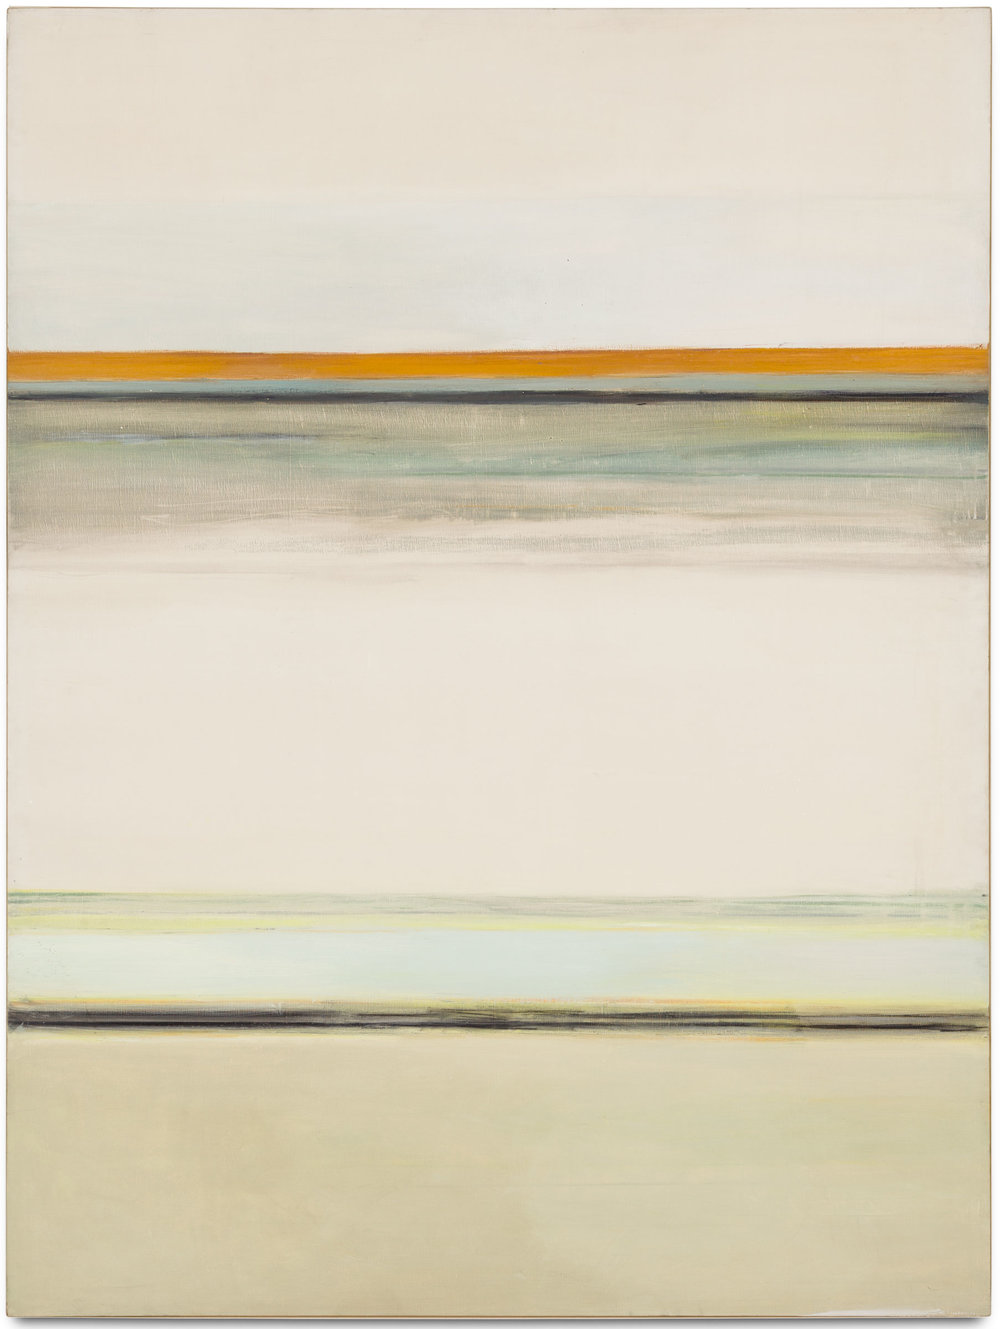 Hedda Sterne, Vertical Horizontal #1 1/2, 1963, Oil on canvas, 72 in. x 54 in.